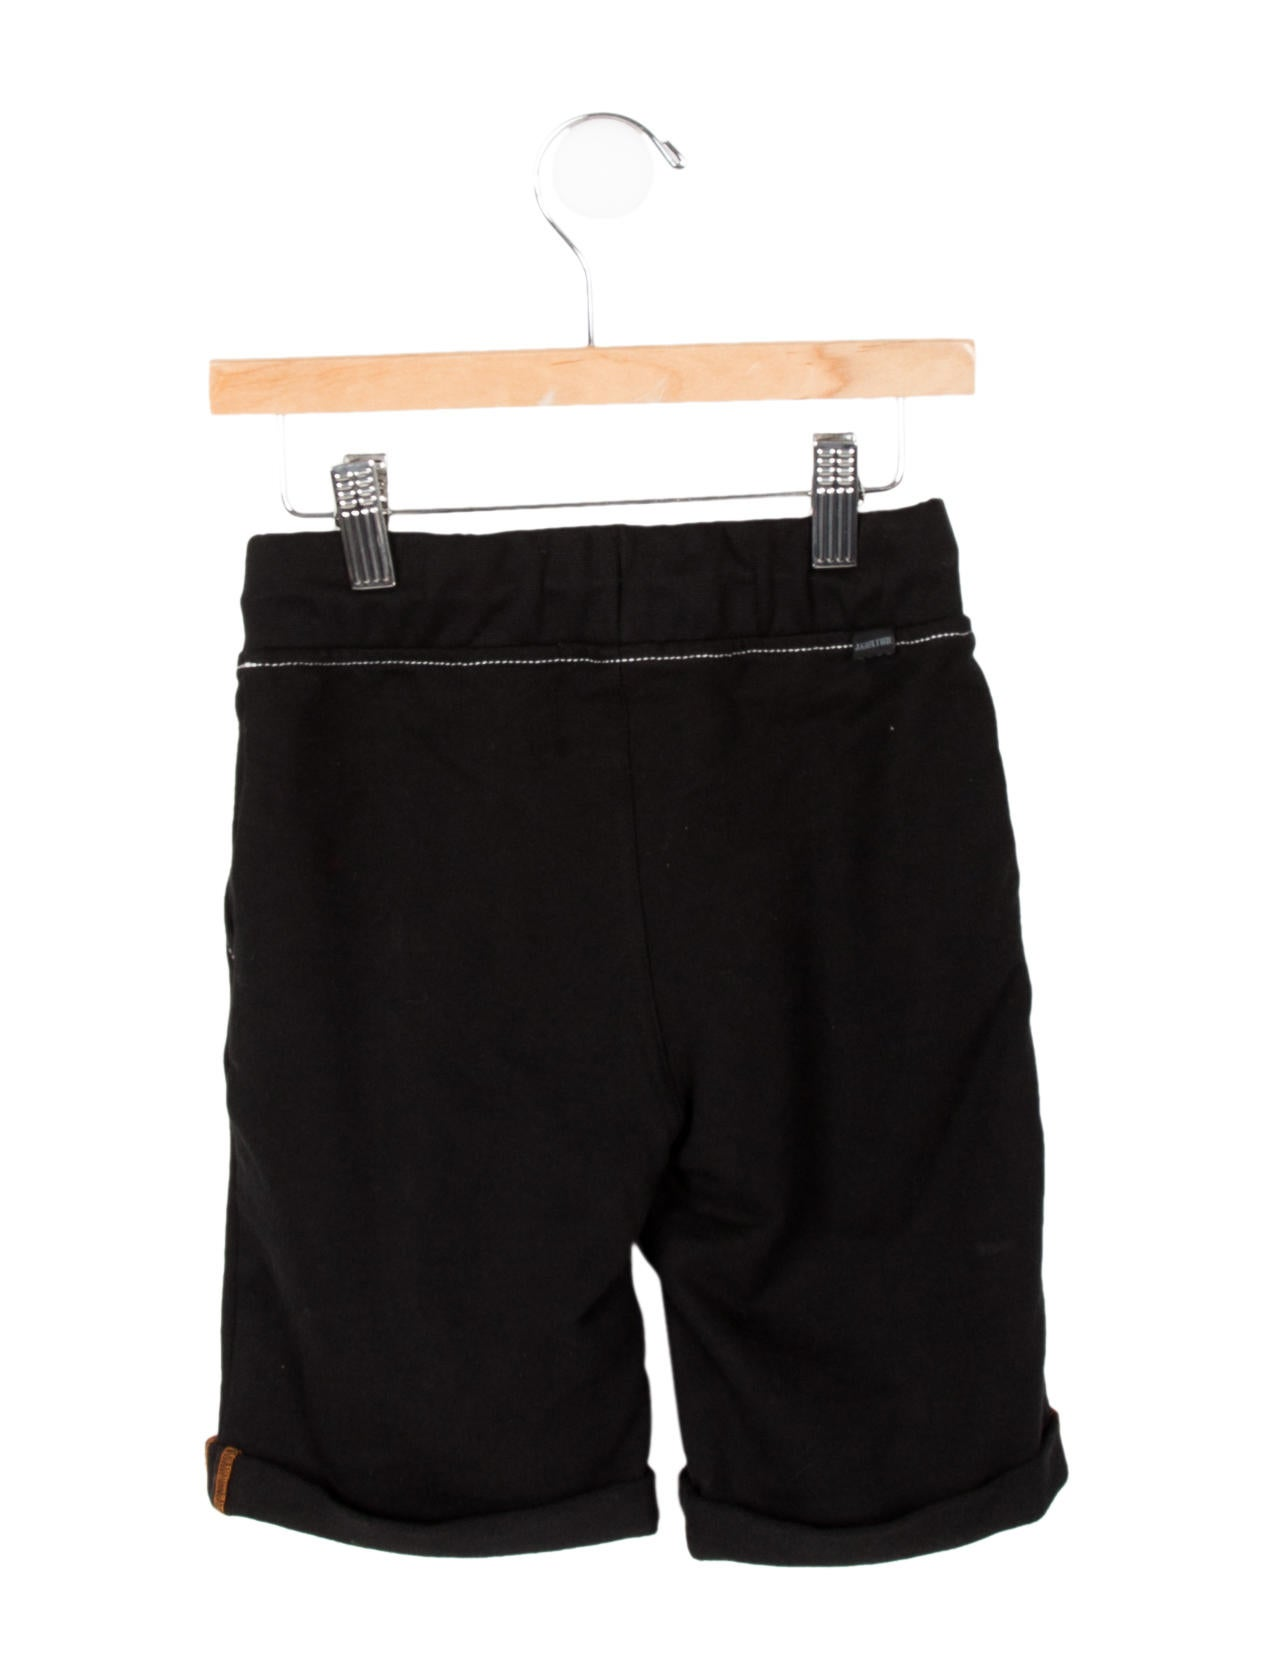 Find great deals on eBay for boys sweat shorts. Shop with confidence.